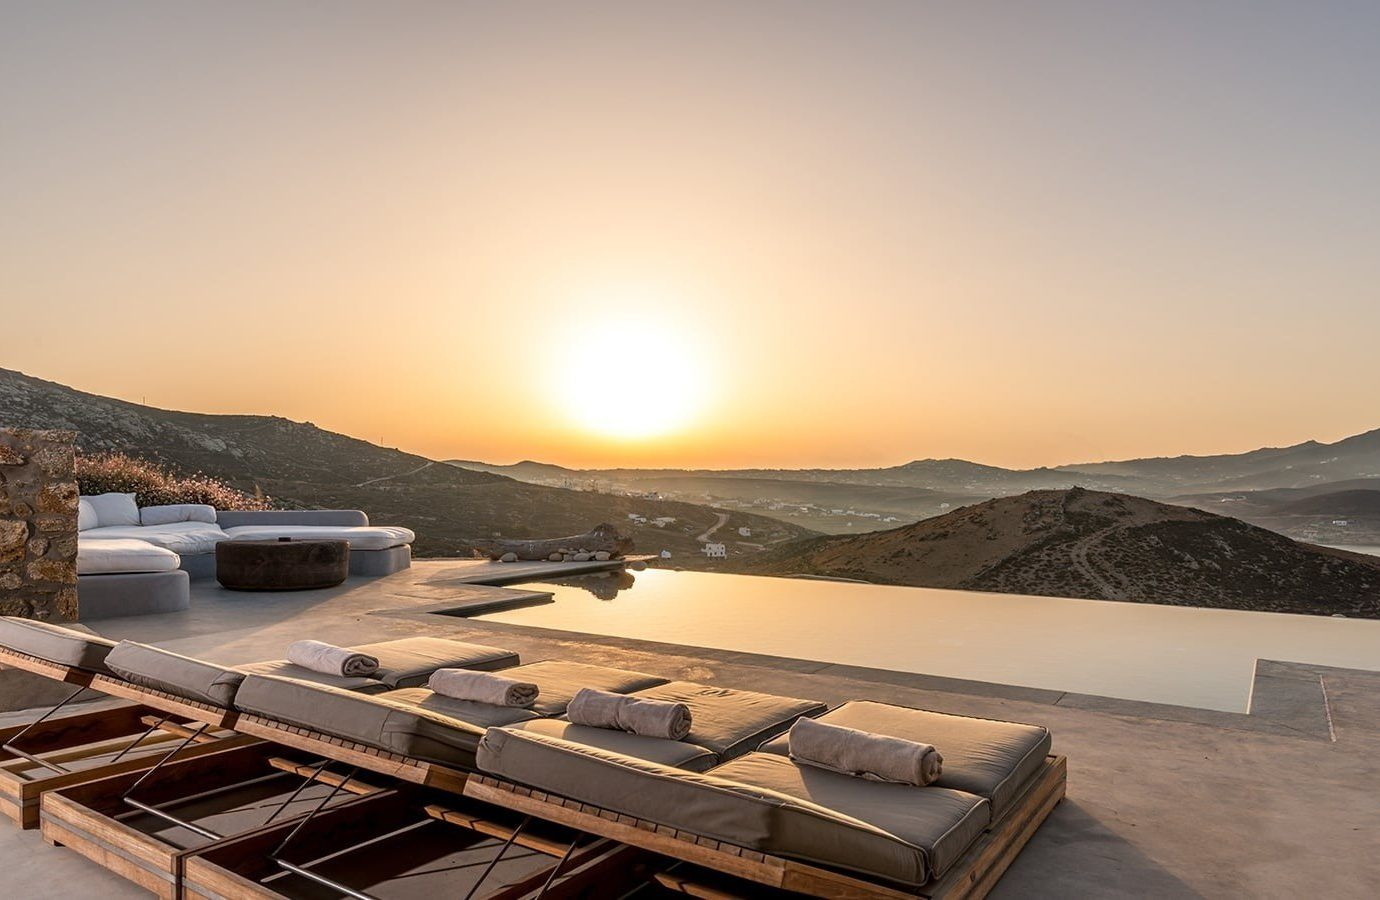 Hotels Luxury Travel sky outdoor property morning real estate roof sunlight sunrise landscape horizon dawn Sunset evening